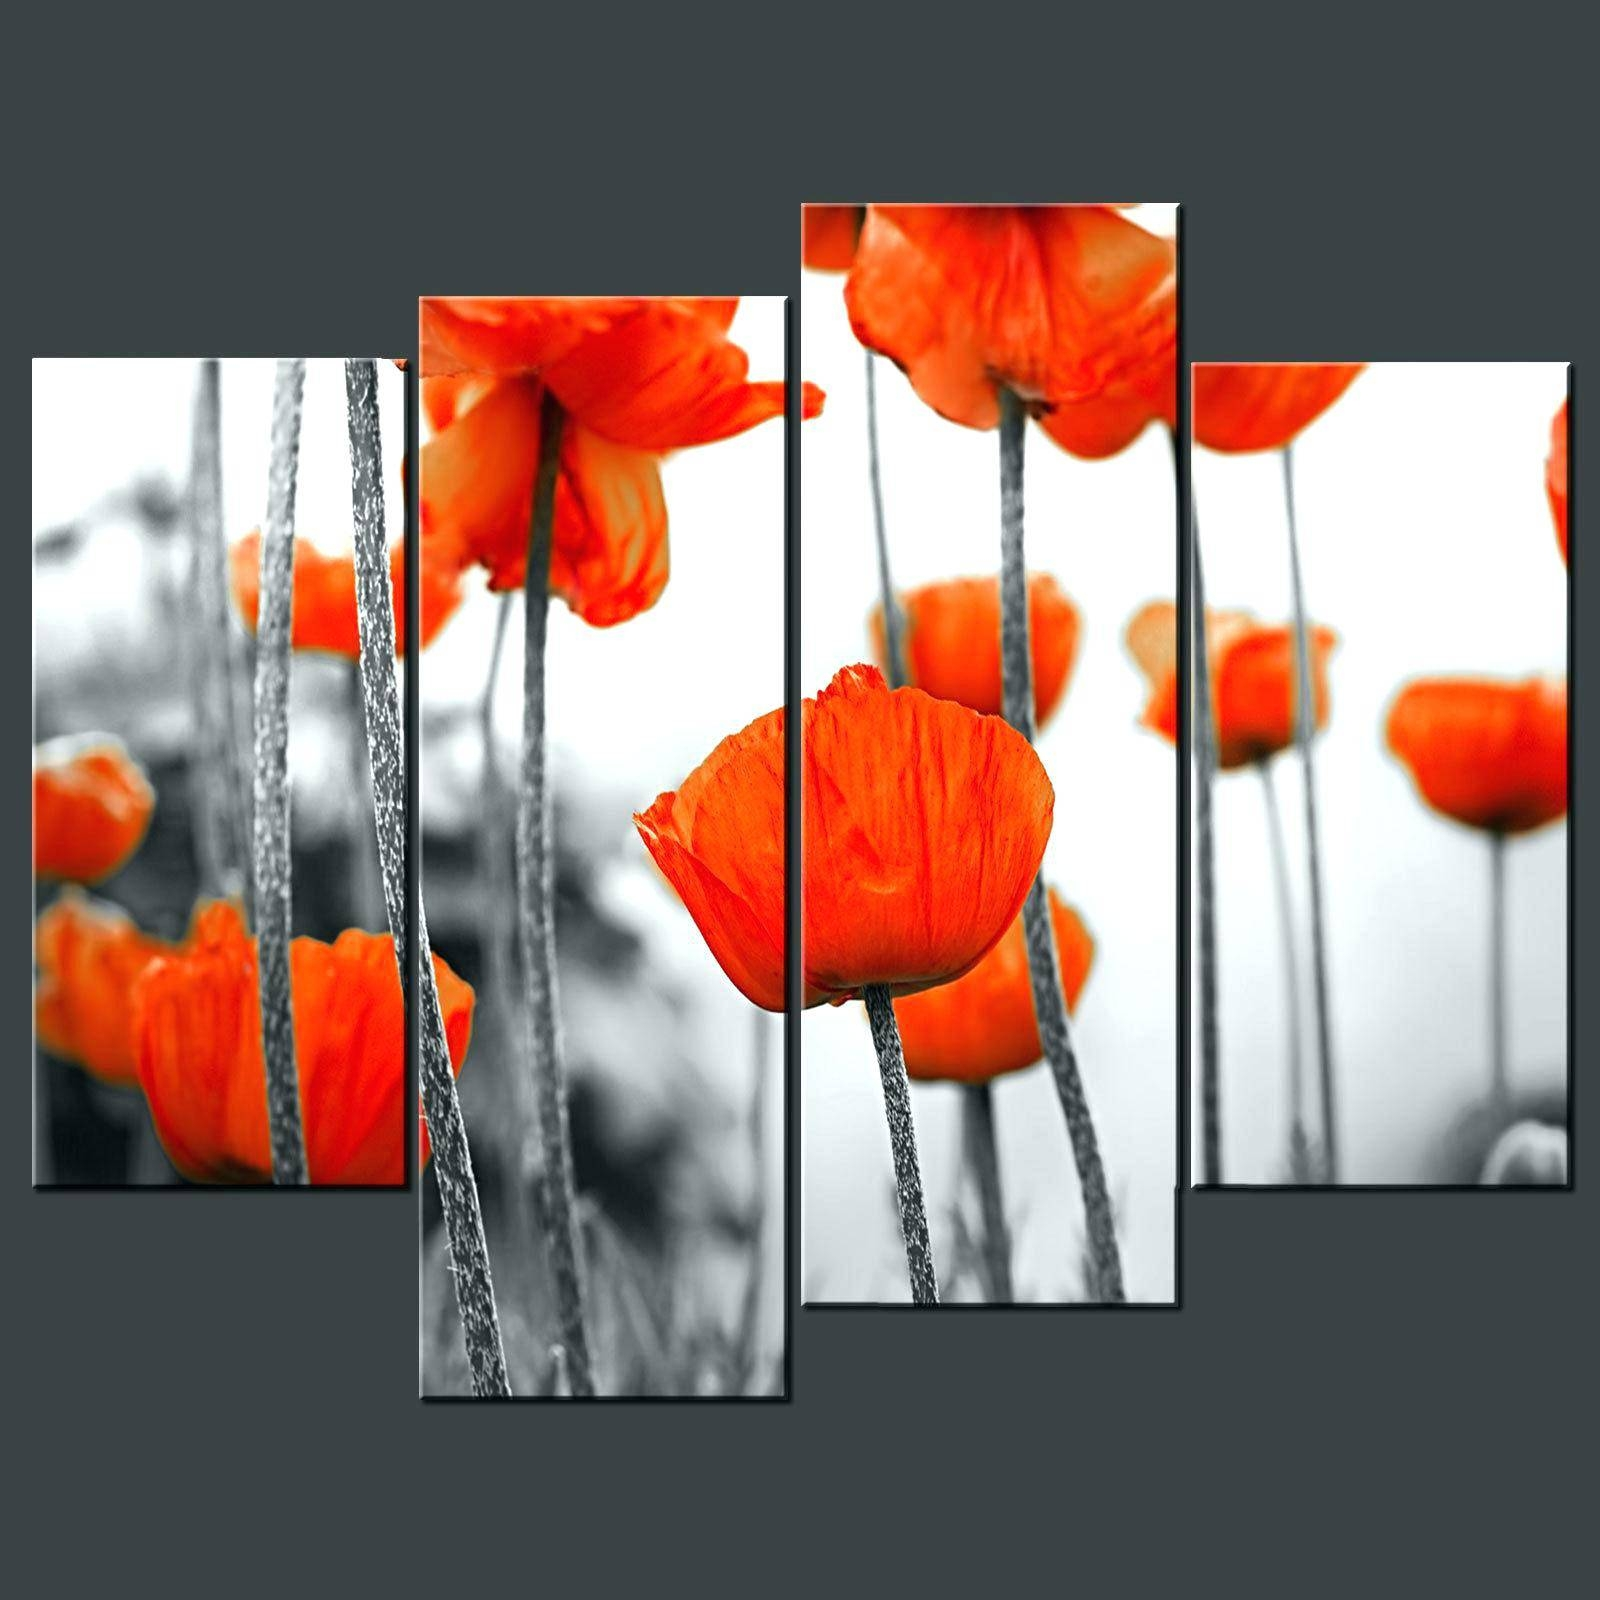 Wall Decor : 106 Red Flower 3 Piece Canvas Painting Wall Art Set Intended For 2017 Red Poppy Canvas Wall Art (View 6 of 20)